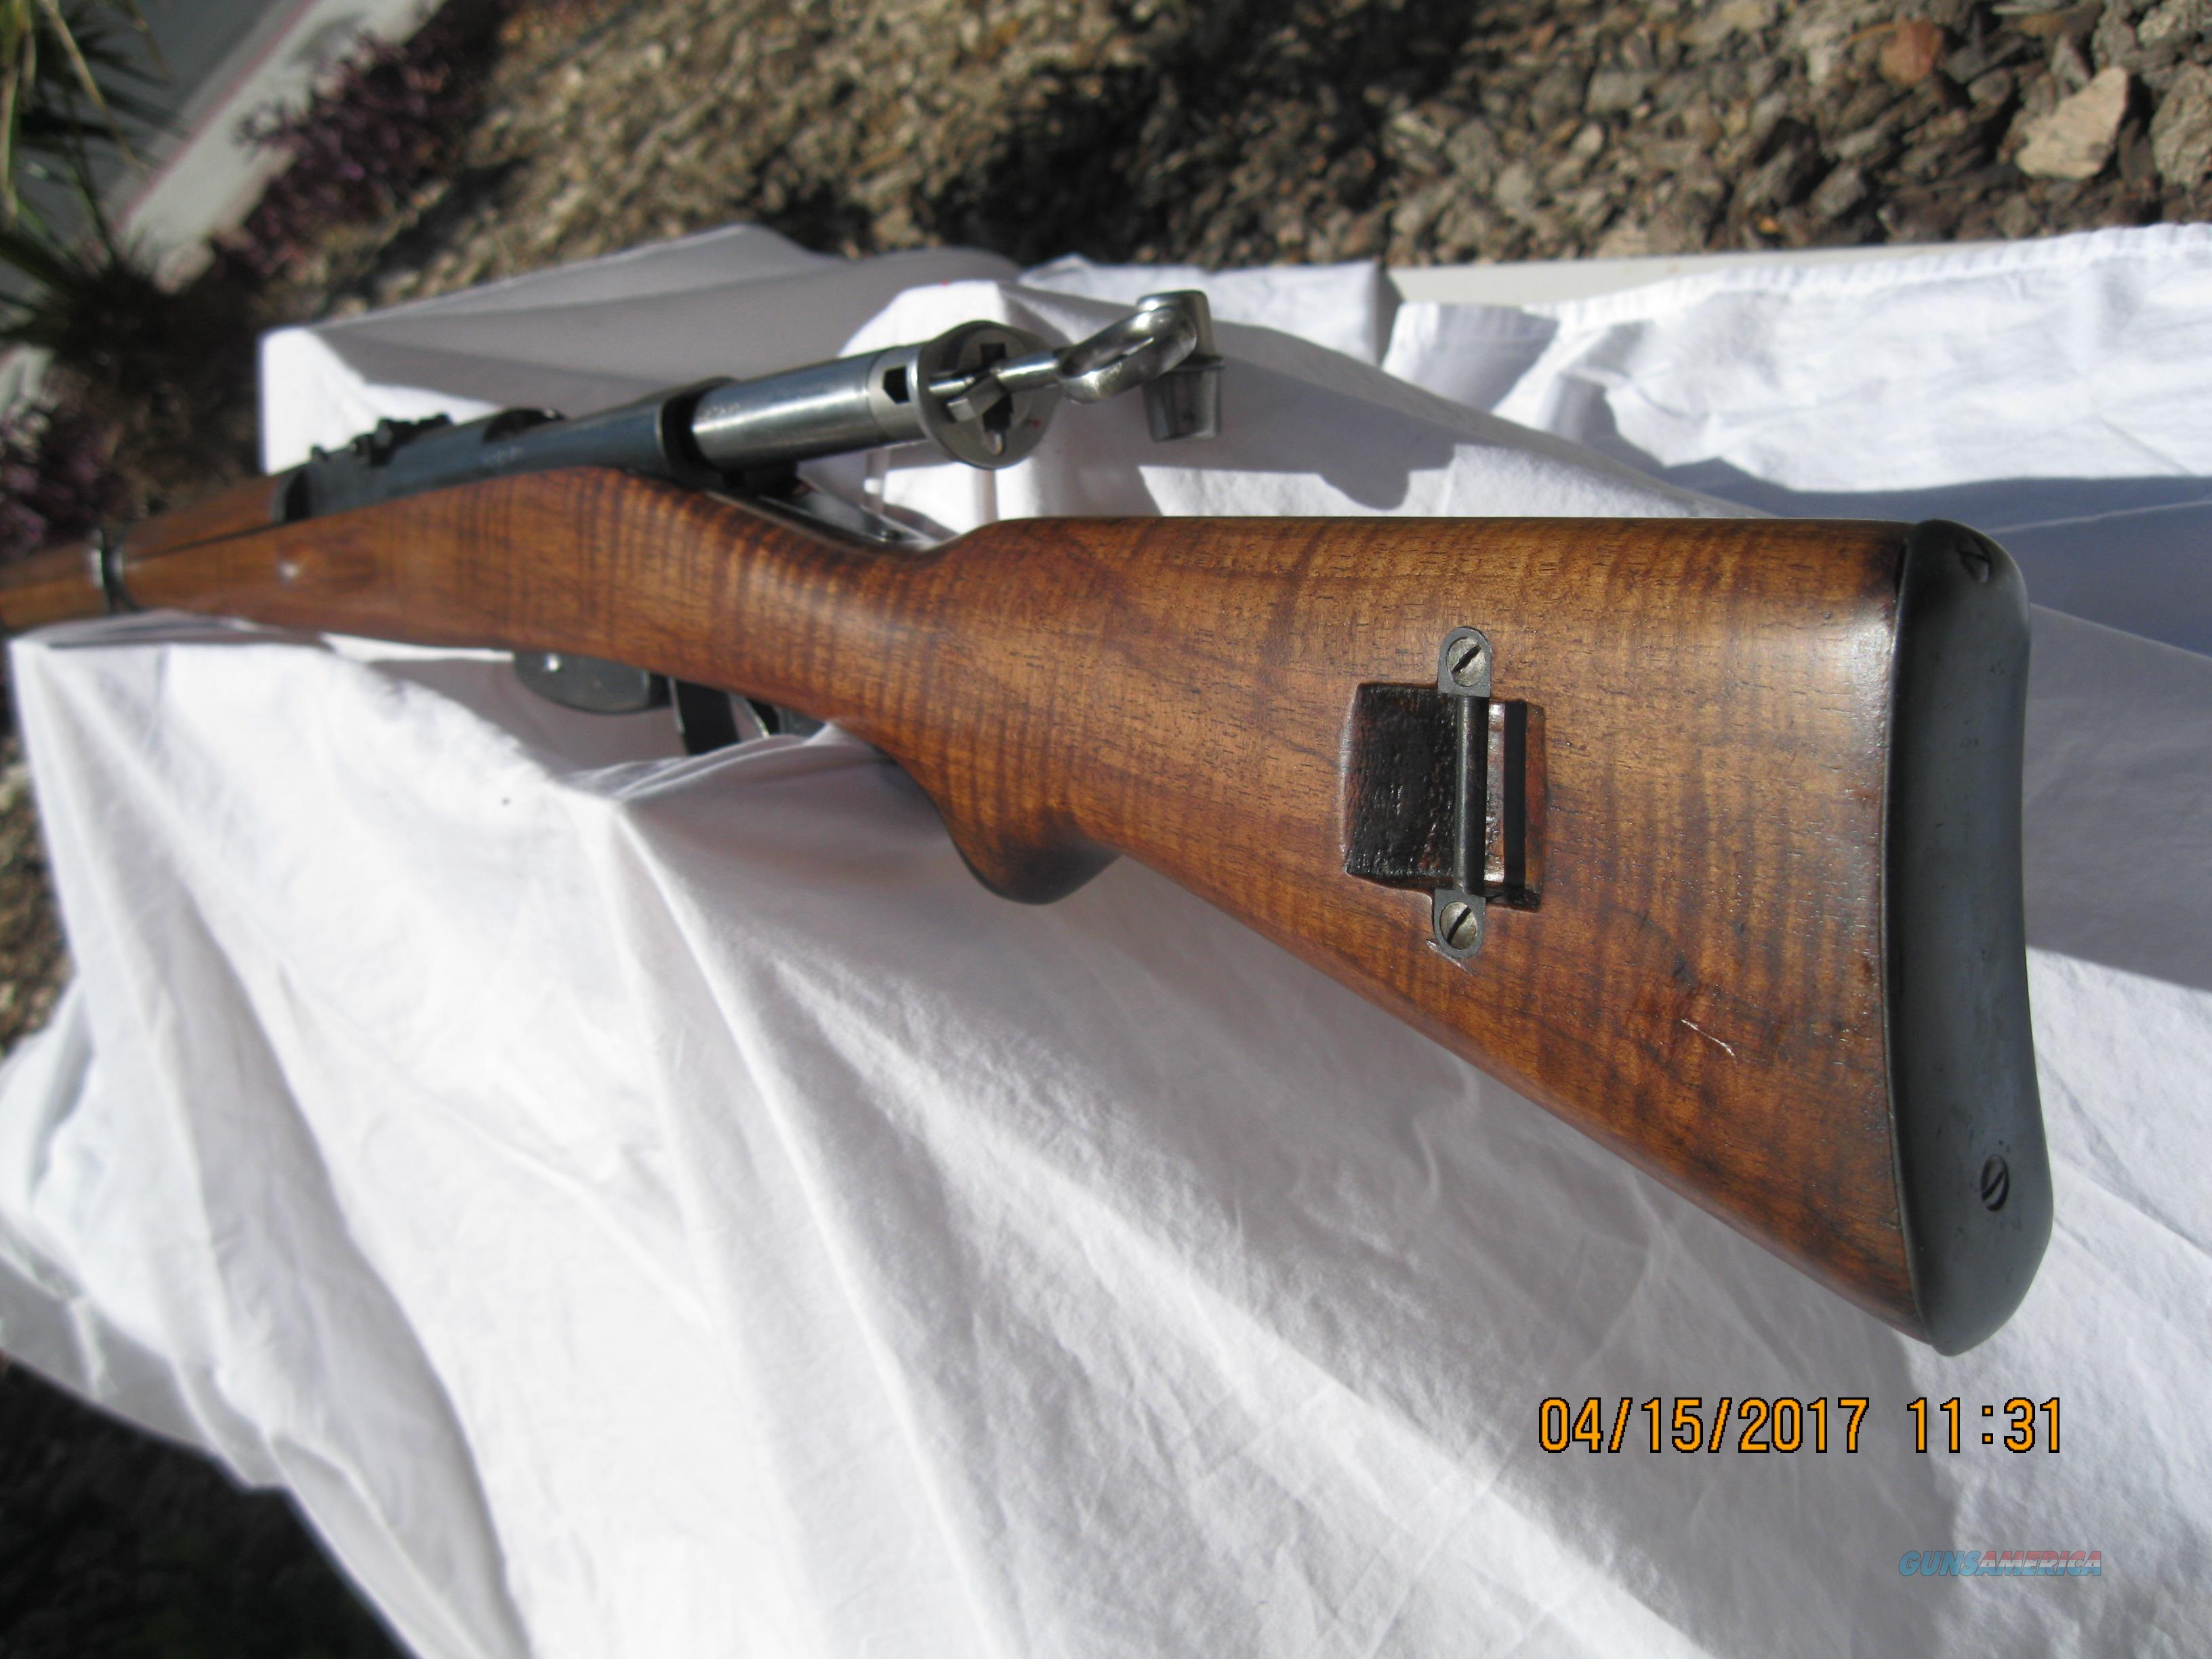 SWISS K-31 STRAIGHT-PULL CARBINE  Guns > Rifles > Military Misc. Rifles Non-US > Shmidt Rubin